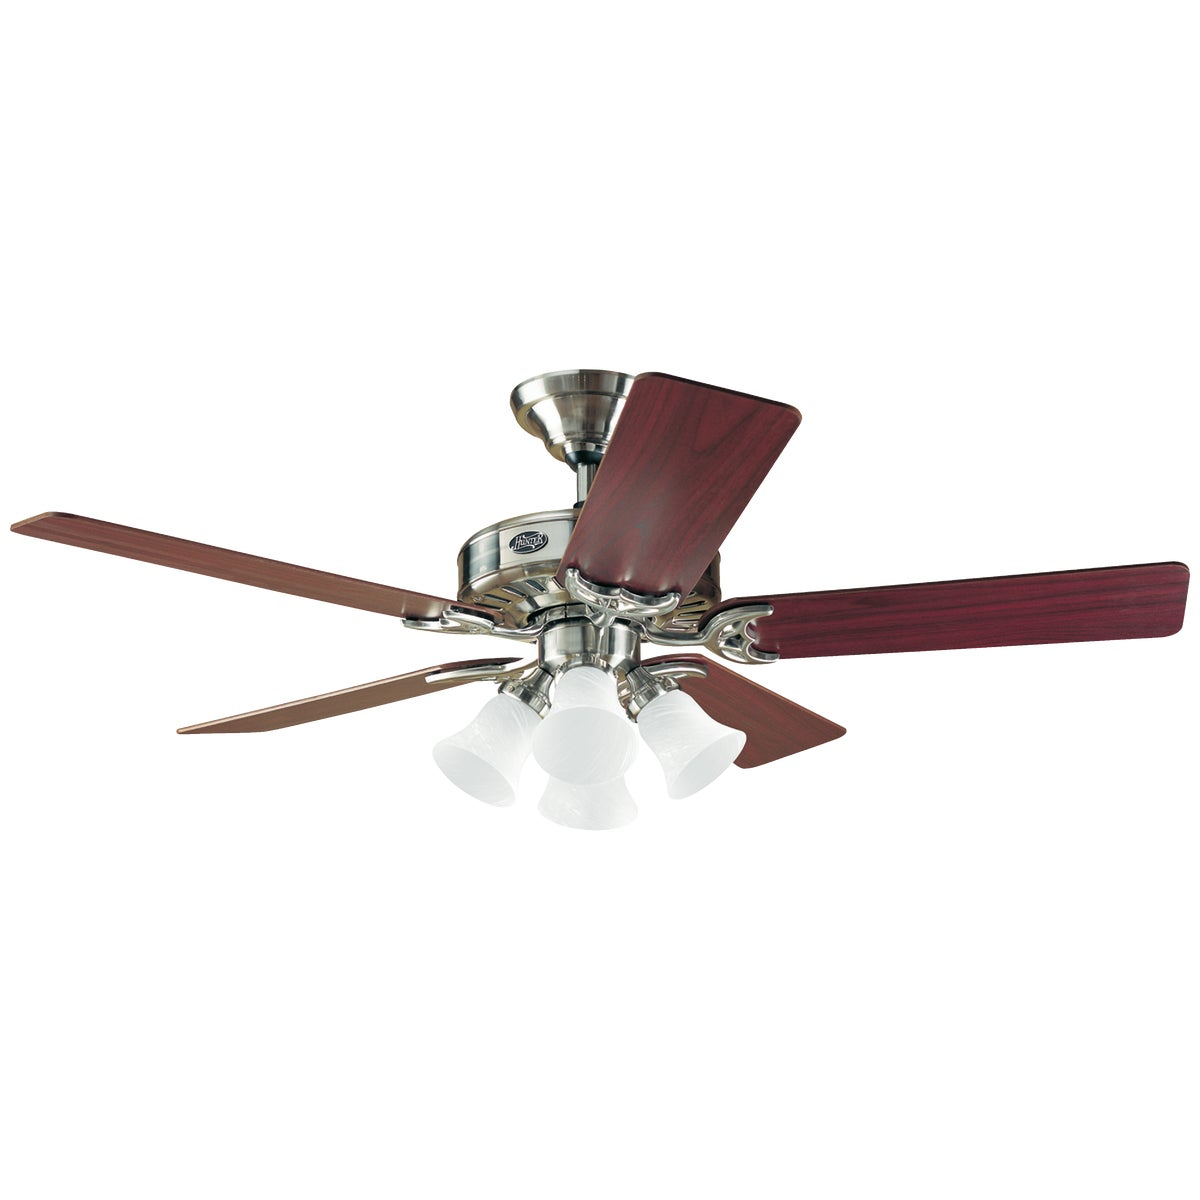 "52"" NKL CEIL FAN W/LIGHT - 53064 by Hunter Fan Co"